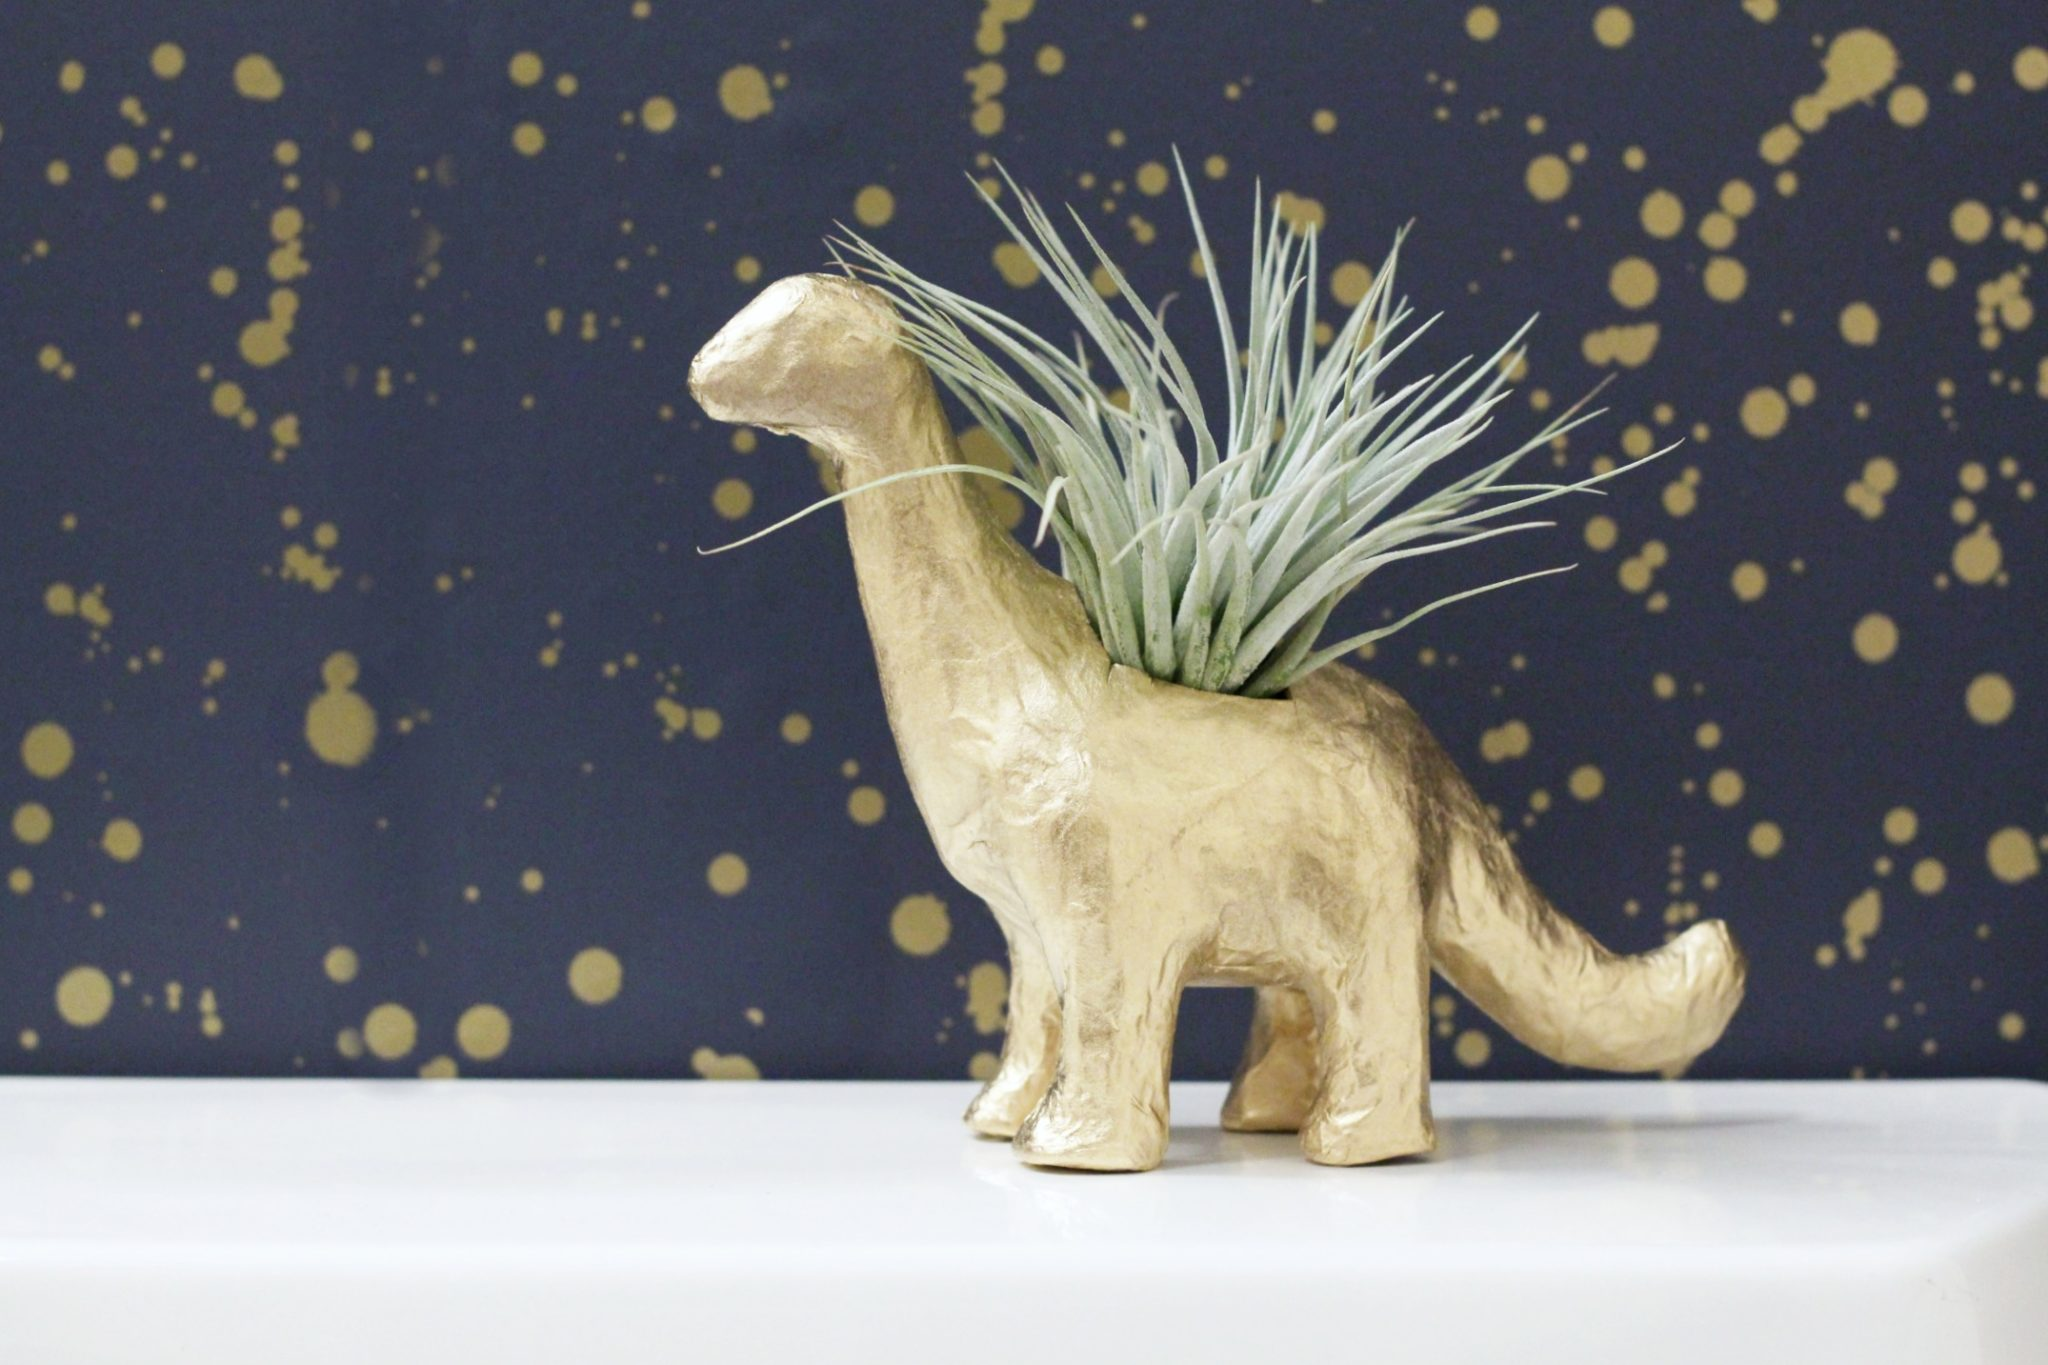 How to Make a DIY Dinosaur Plante